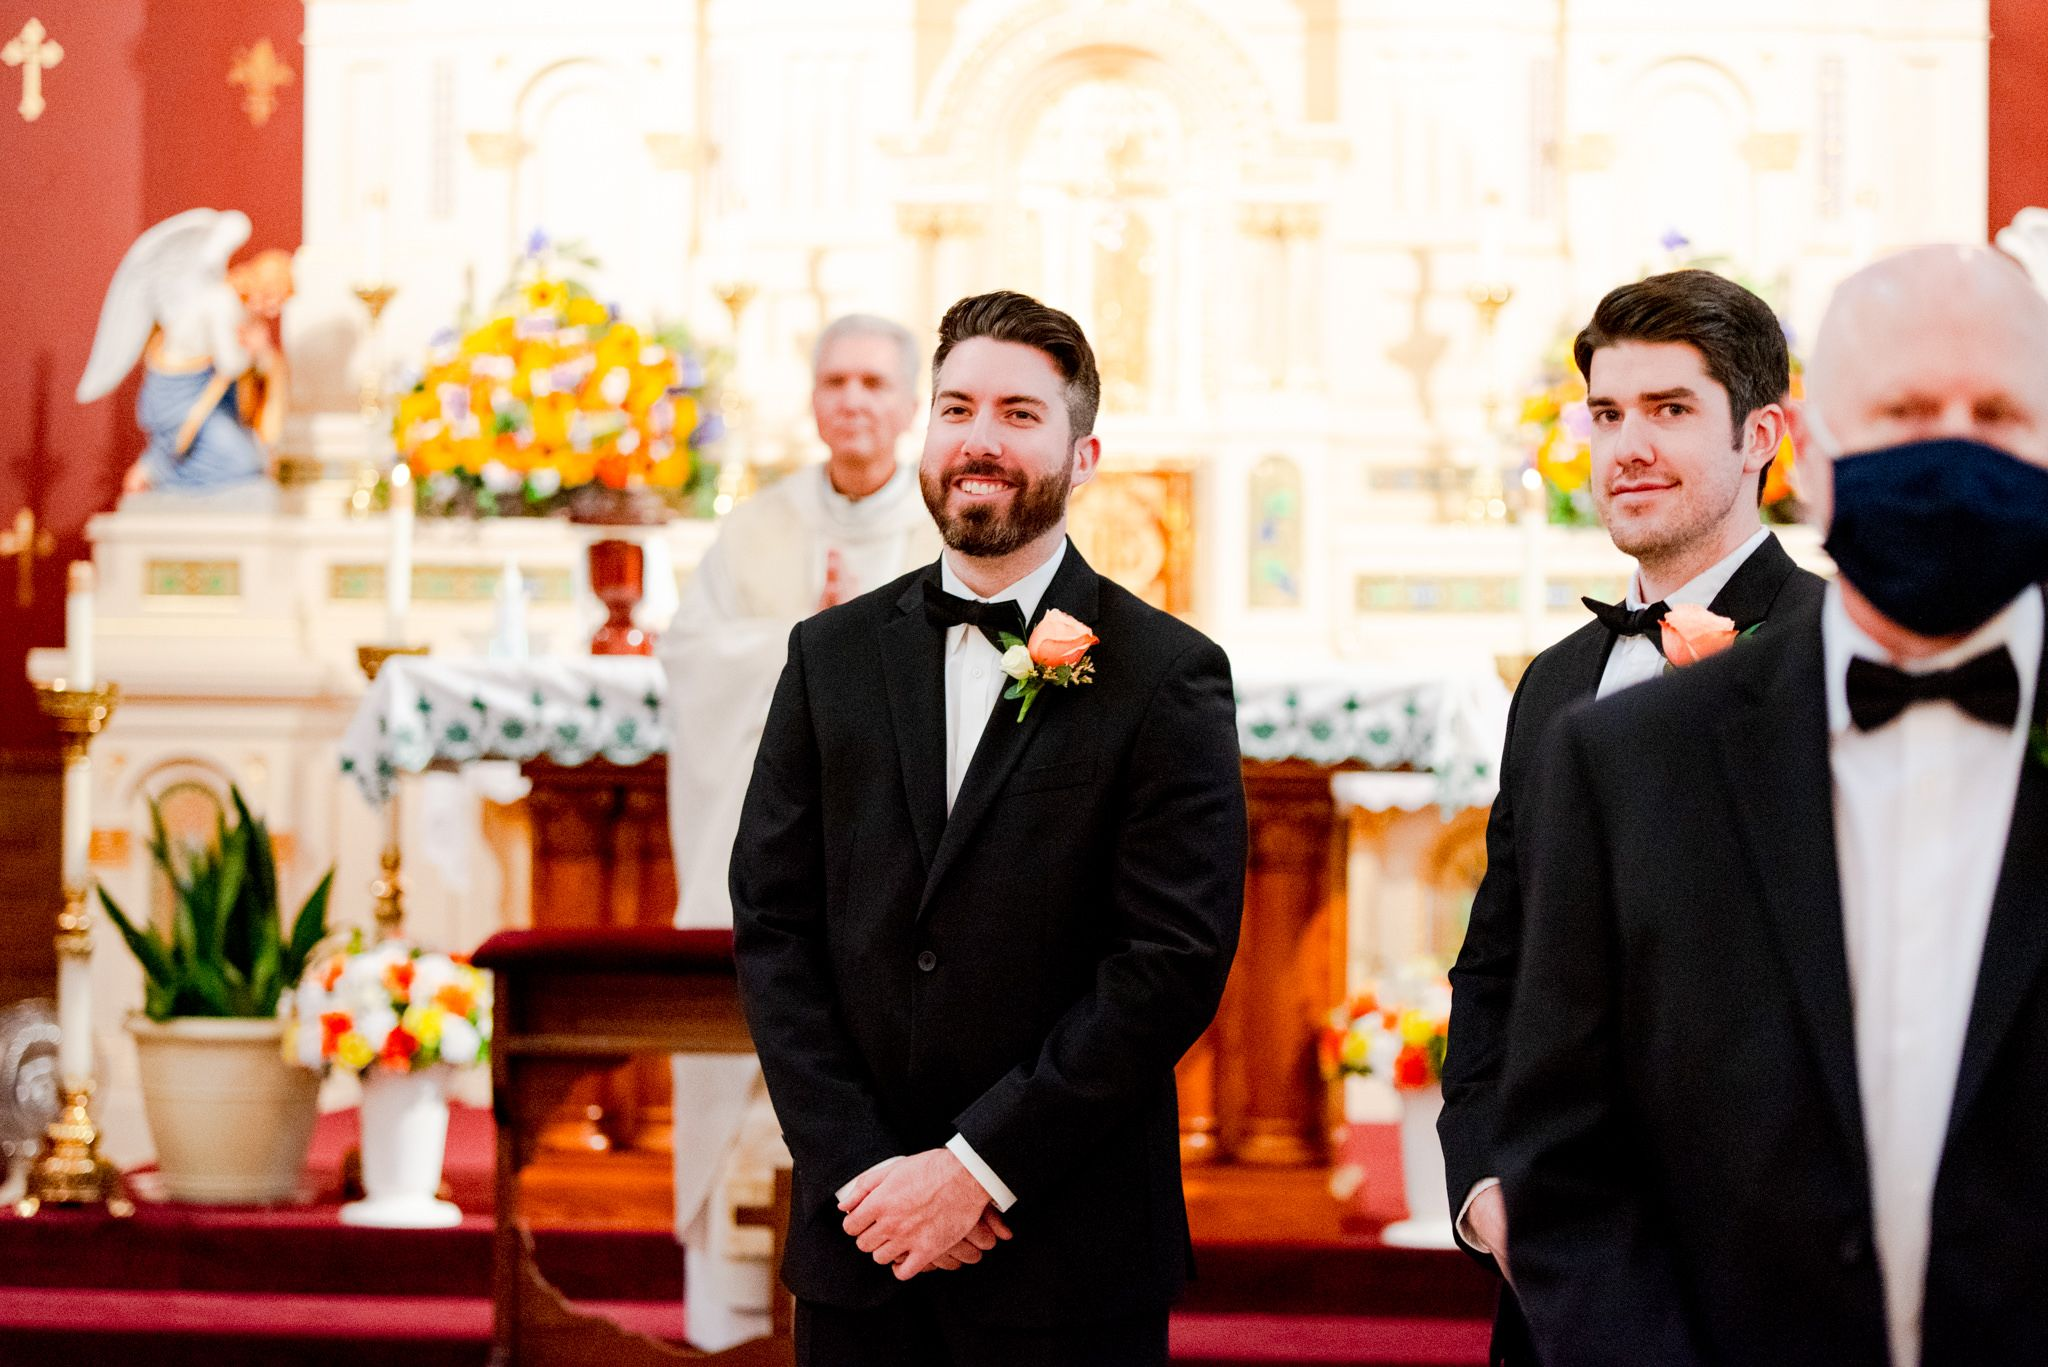 brunette groom and his brother watching the bride walk down the aisle of the church, both smiling at her